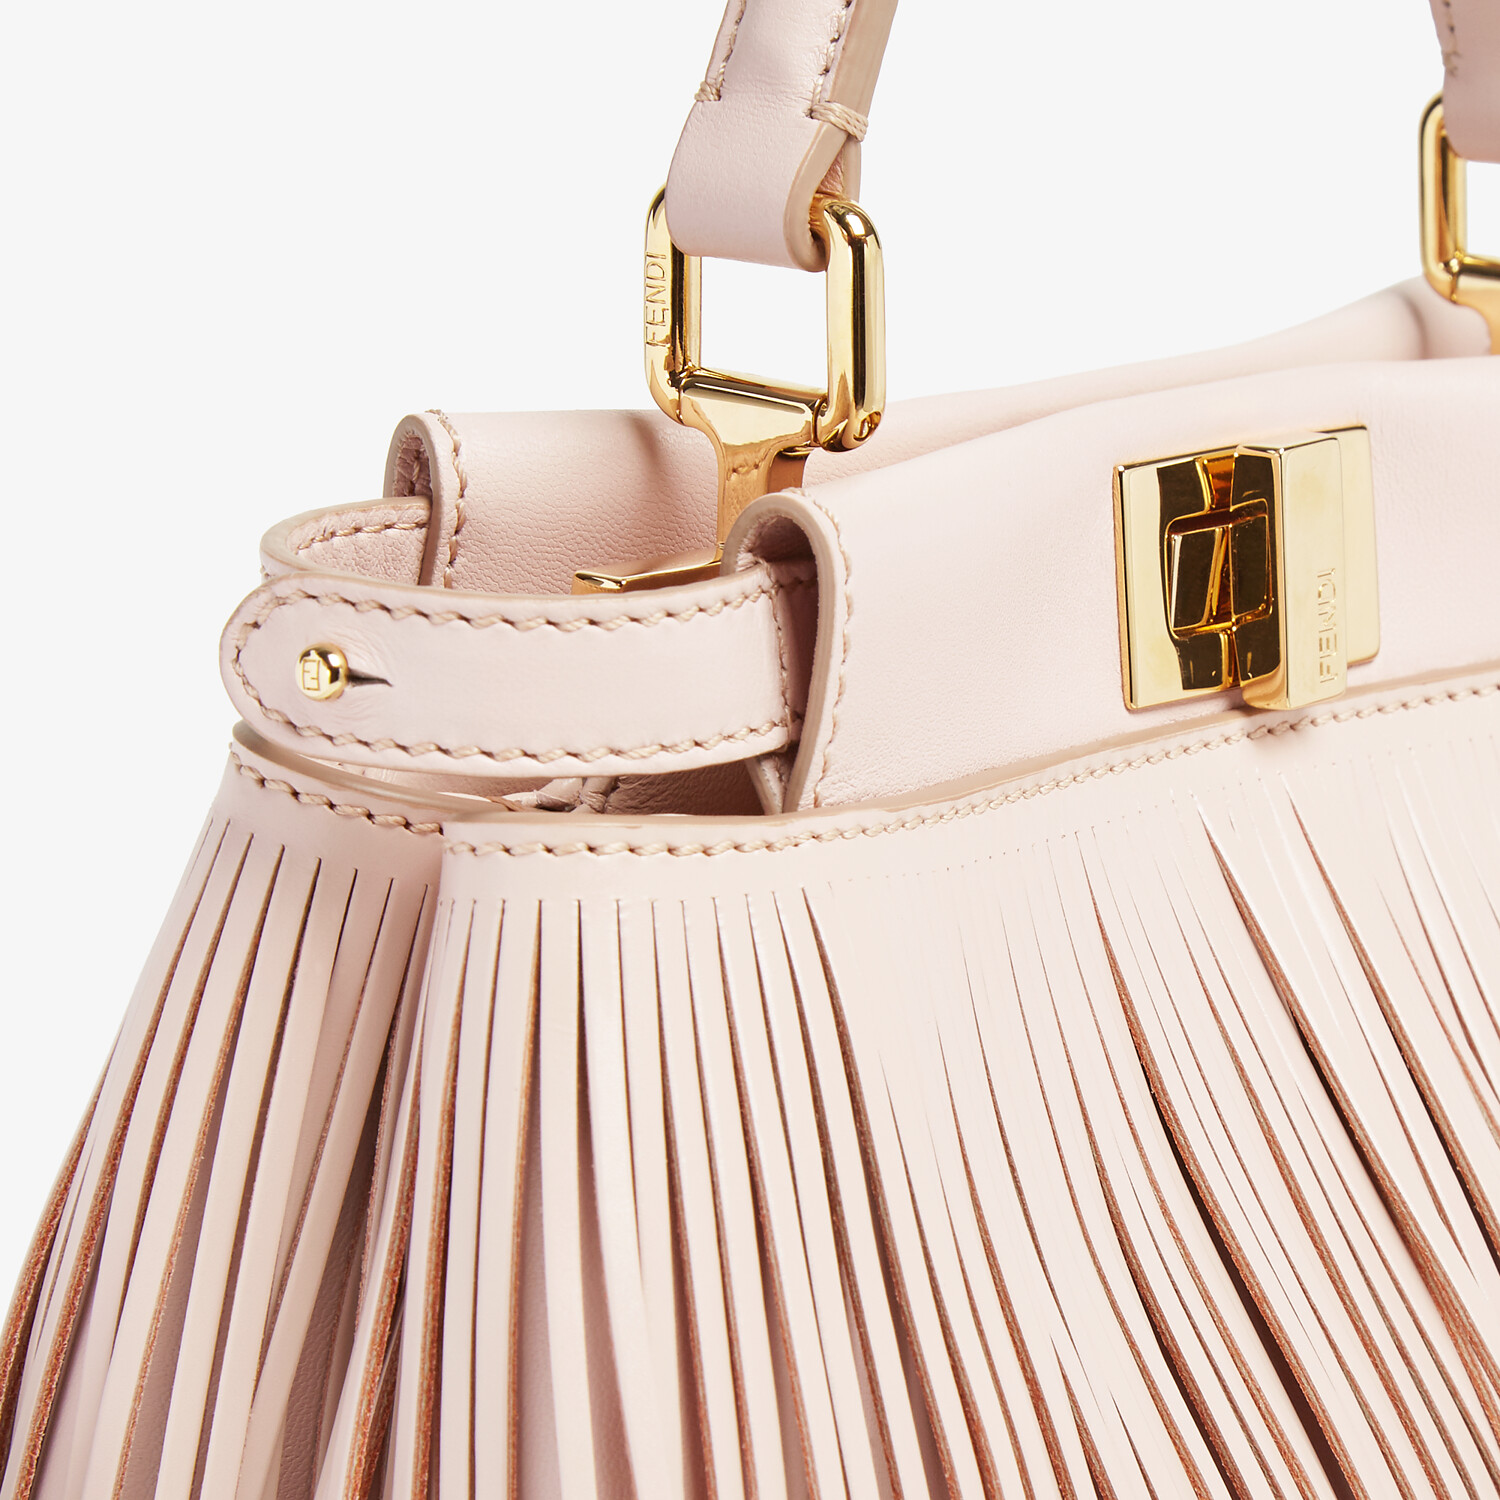 FENDI PEEKABOO ICONIC MINI - Pink leather bag with fringes - view 5 detail